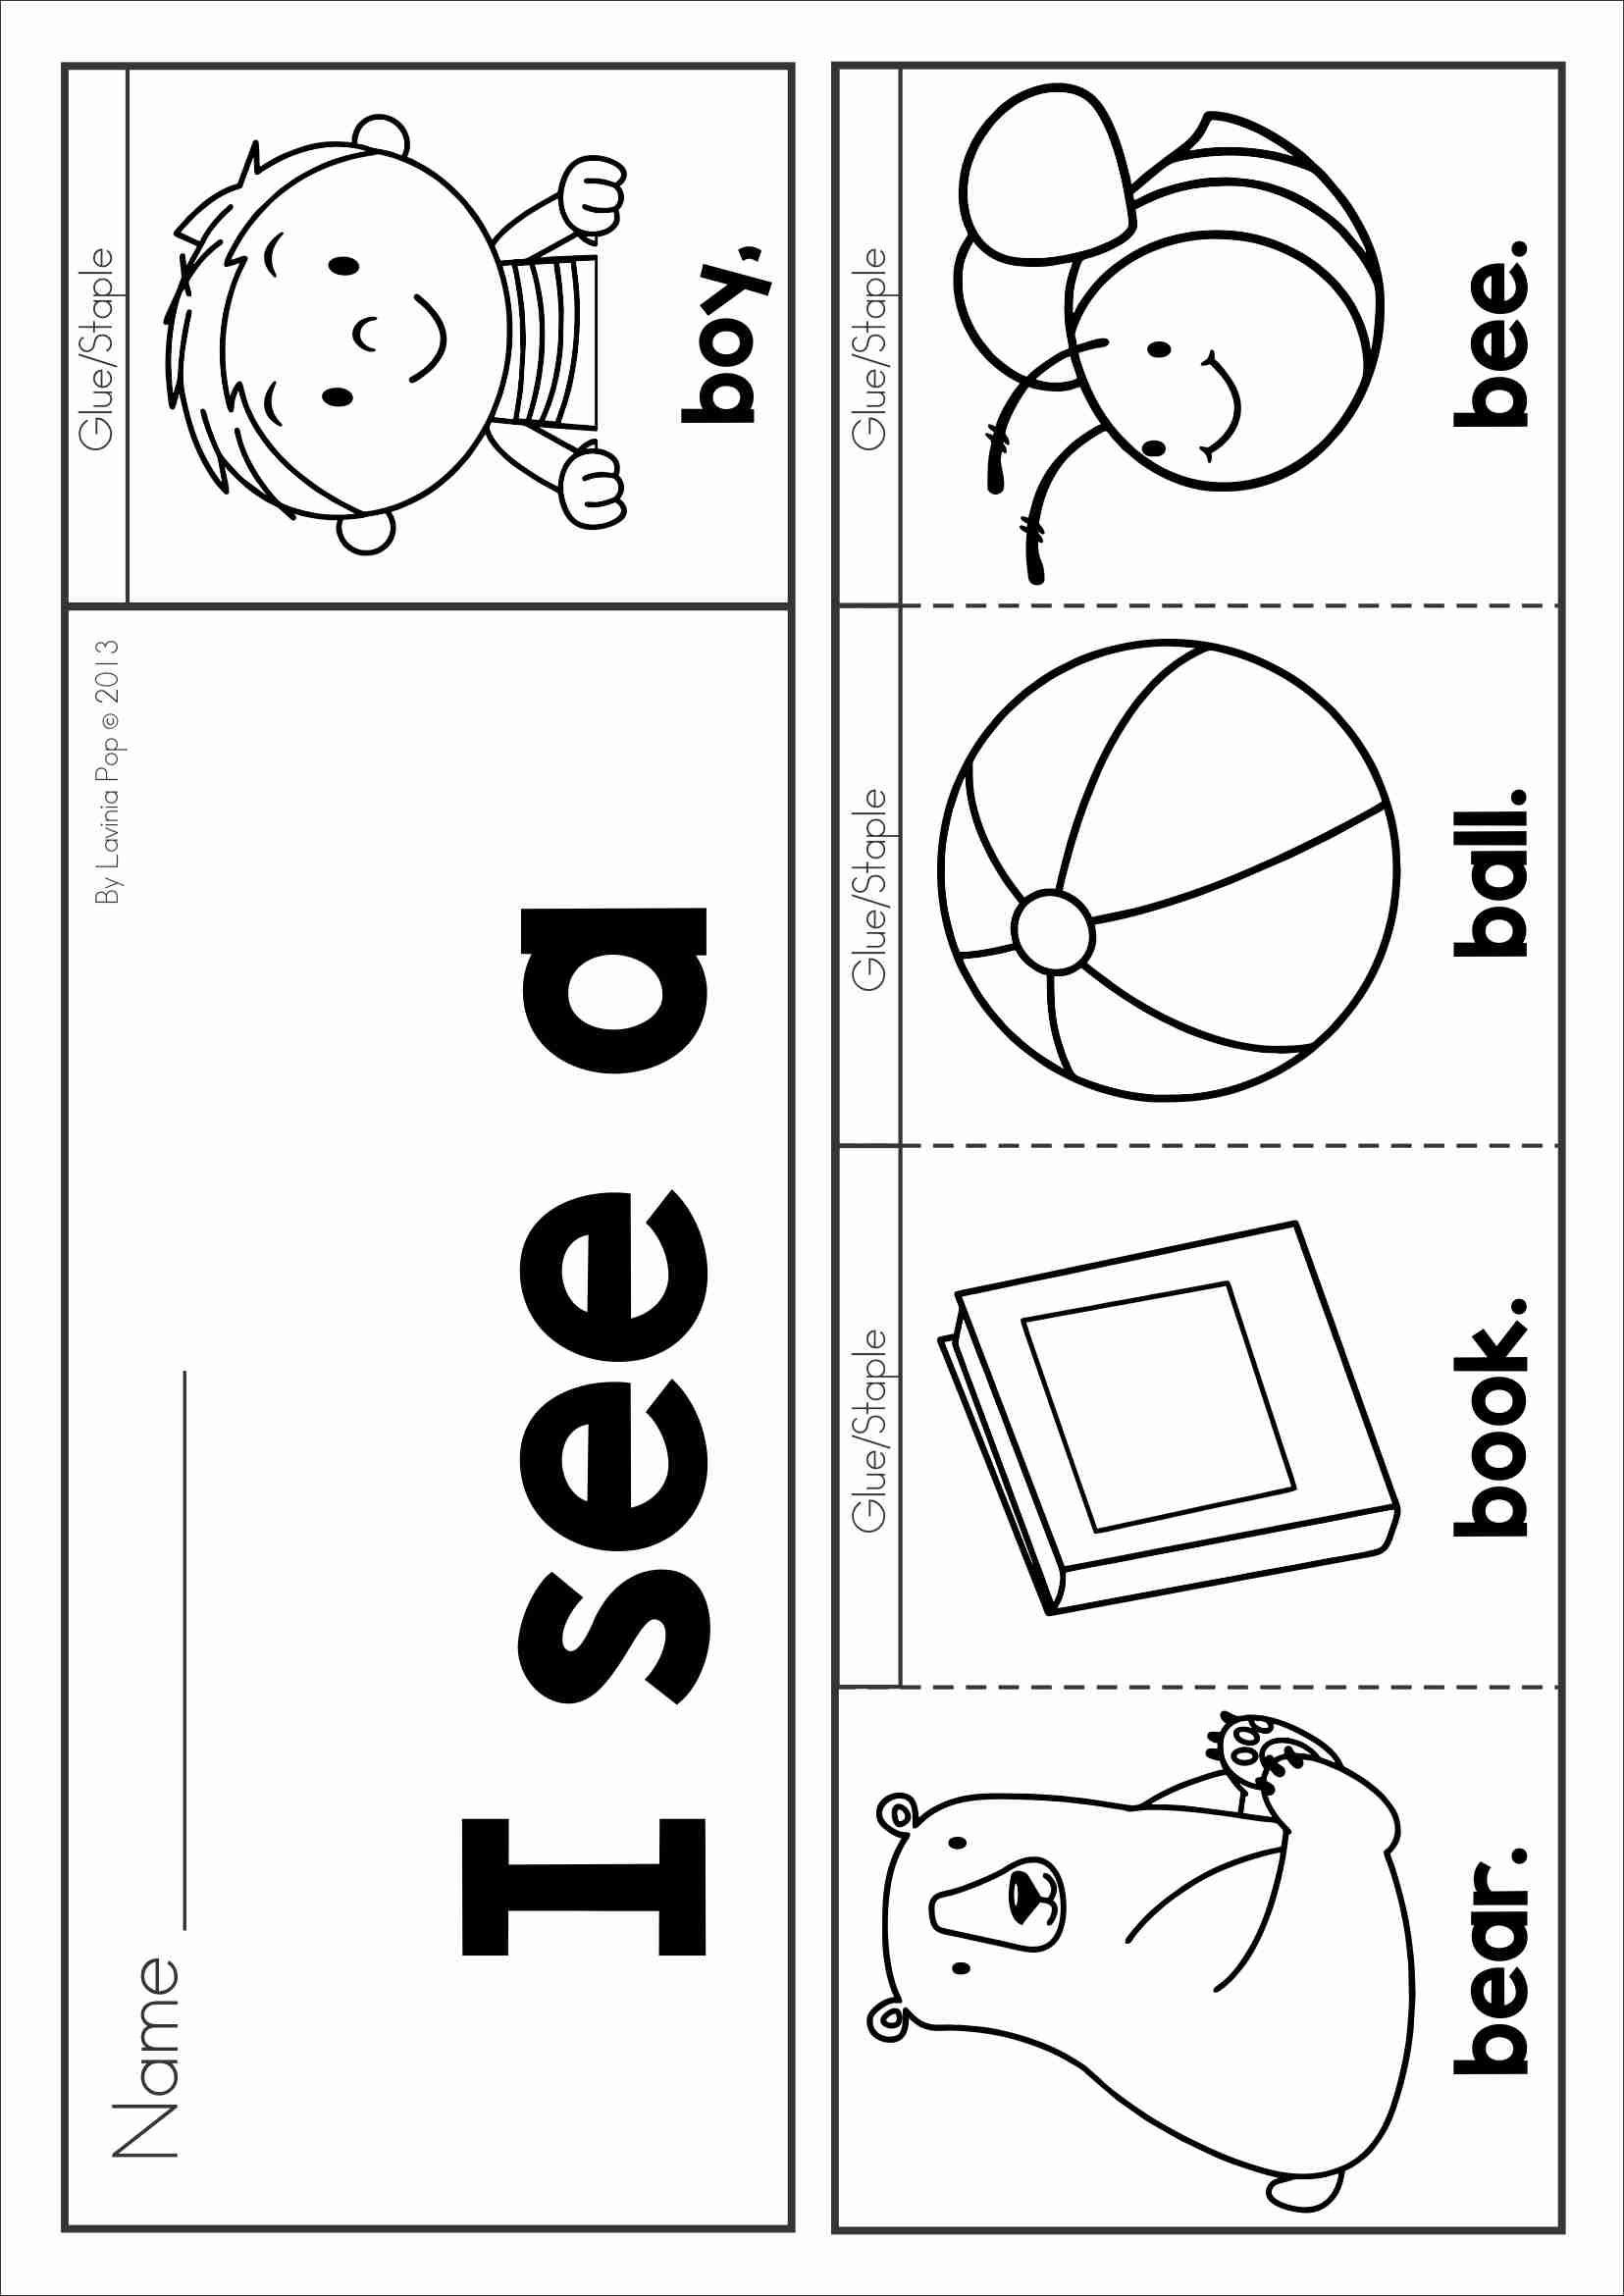 Free Phonics Letter Of The Week B Sight Words And Beginning Sounds Flip Book In Color And Black And White Alphabet Phonics Sight Words Kindergarten Phonics